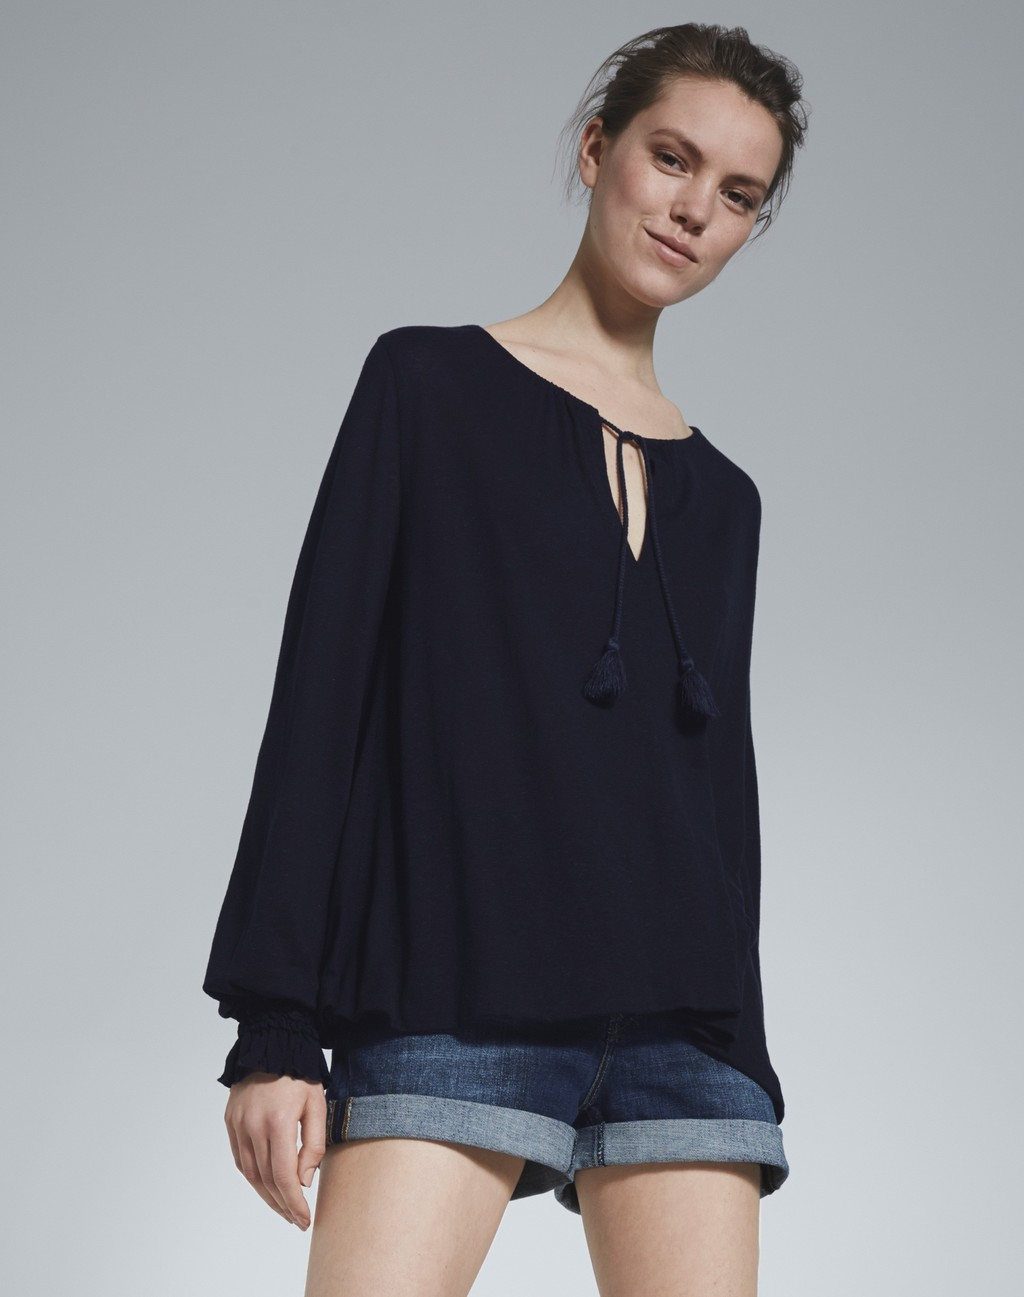 Linen Ruched Cuff Swing Top Navy - pattern: plain; neckline: pussy bow; predominant colour: black; occasions: casual; length: standard; style: top; fibres: linen - 100%; fit: loose; sleeve length: long sleeve; sleeve style: standard; texture group: crepes; pattern type: fabric; season: s/s 2016; wardrobe: highlight